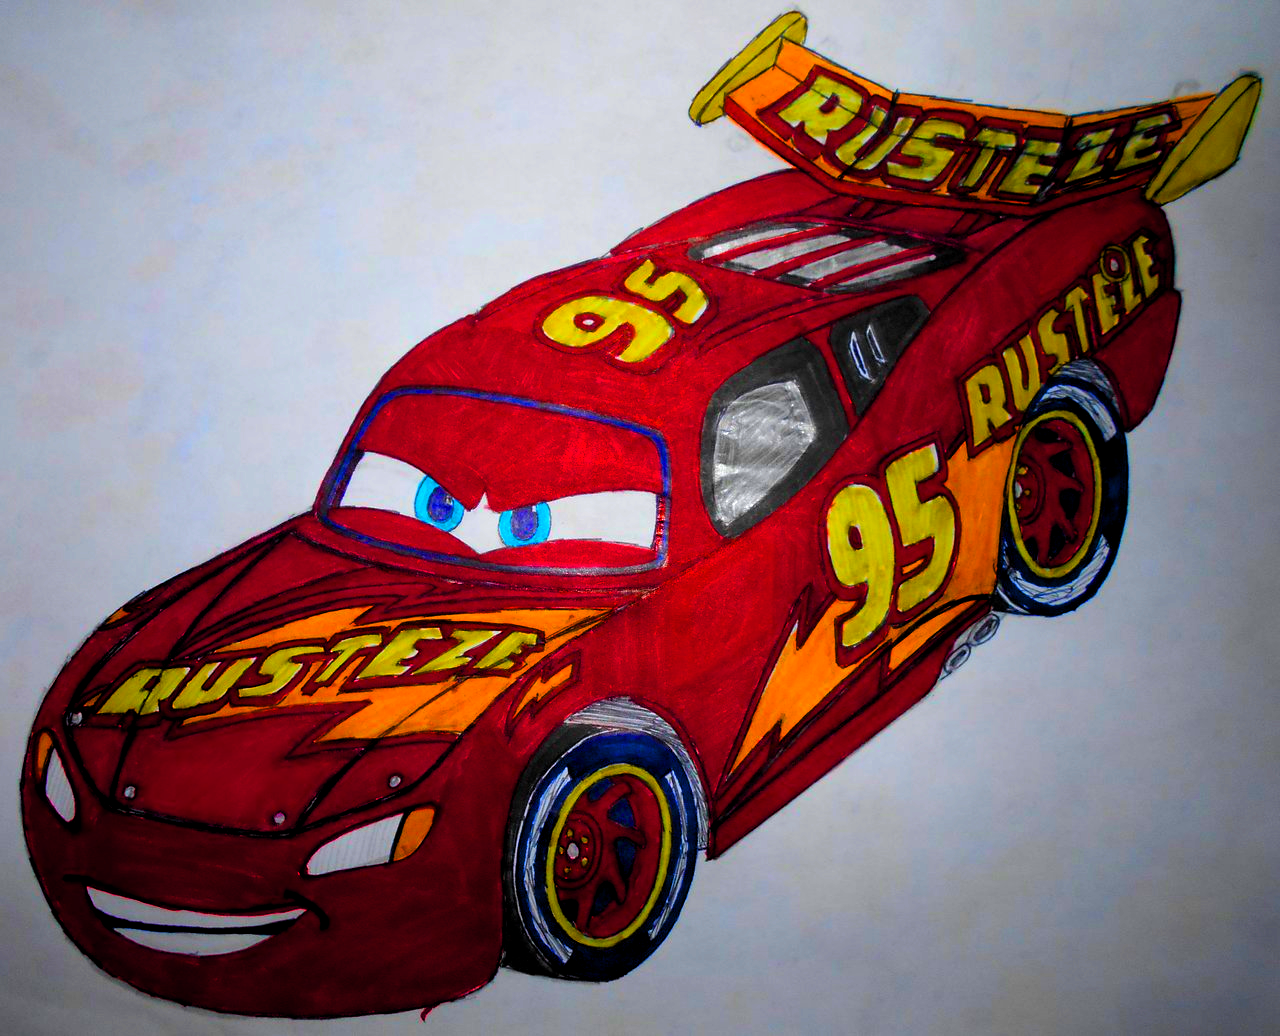 Cars 3: Next-Generation Lightning McQueen 2.0 muro by sgtjack2016